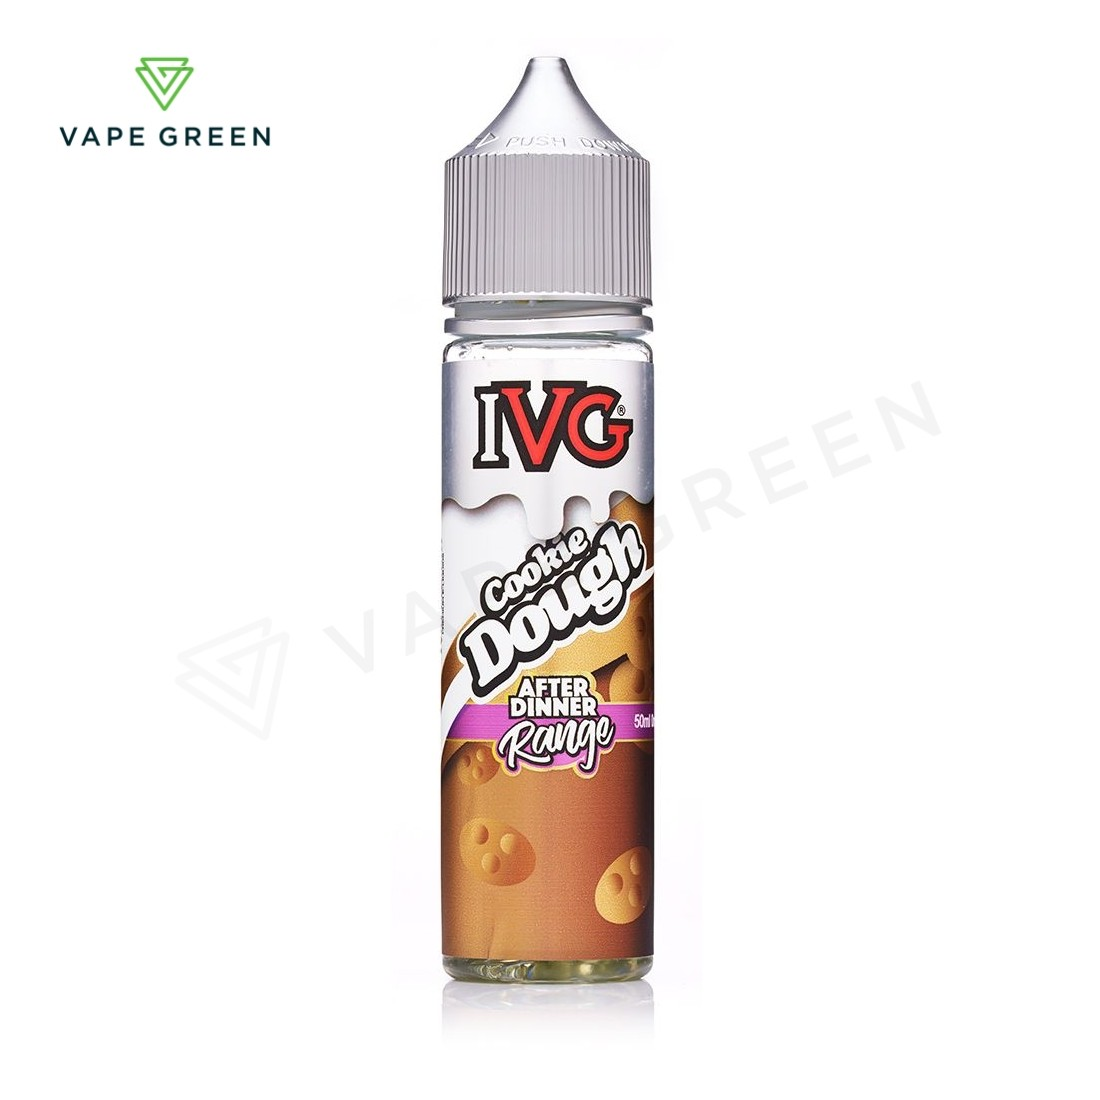 Cookie Dough E-liquid by IVG After Dinner 50ml